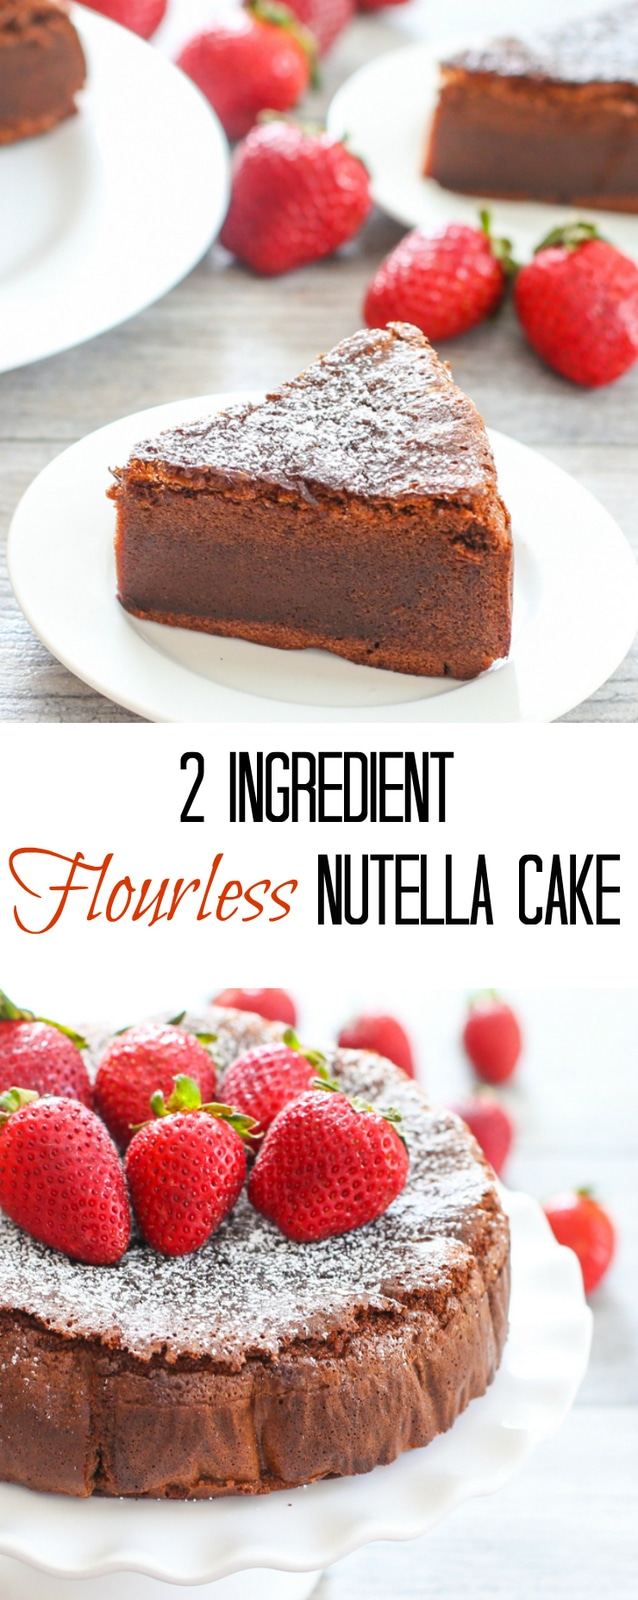 2 Ingredient Flourless Nutella Cake. Gluten free too!